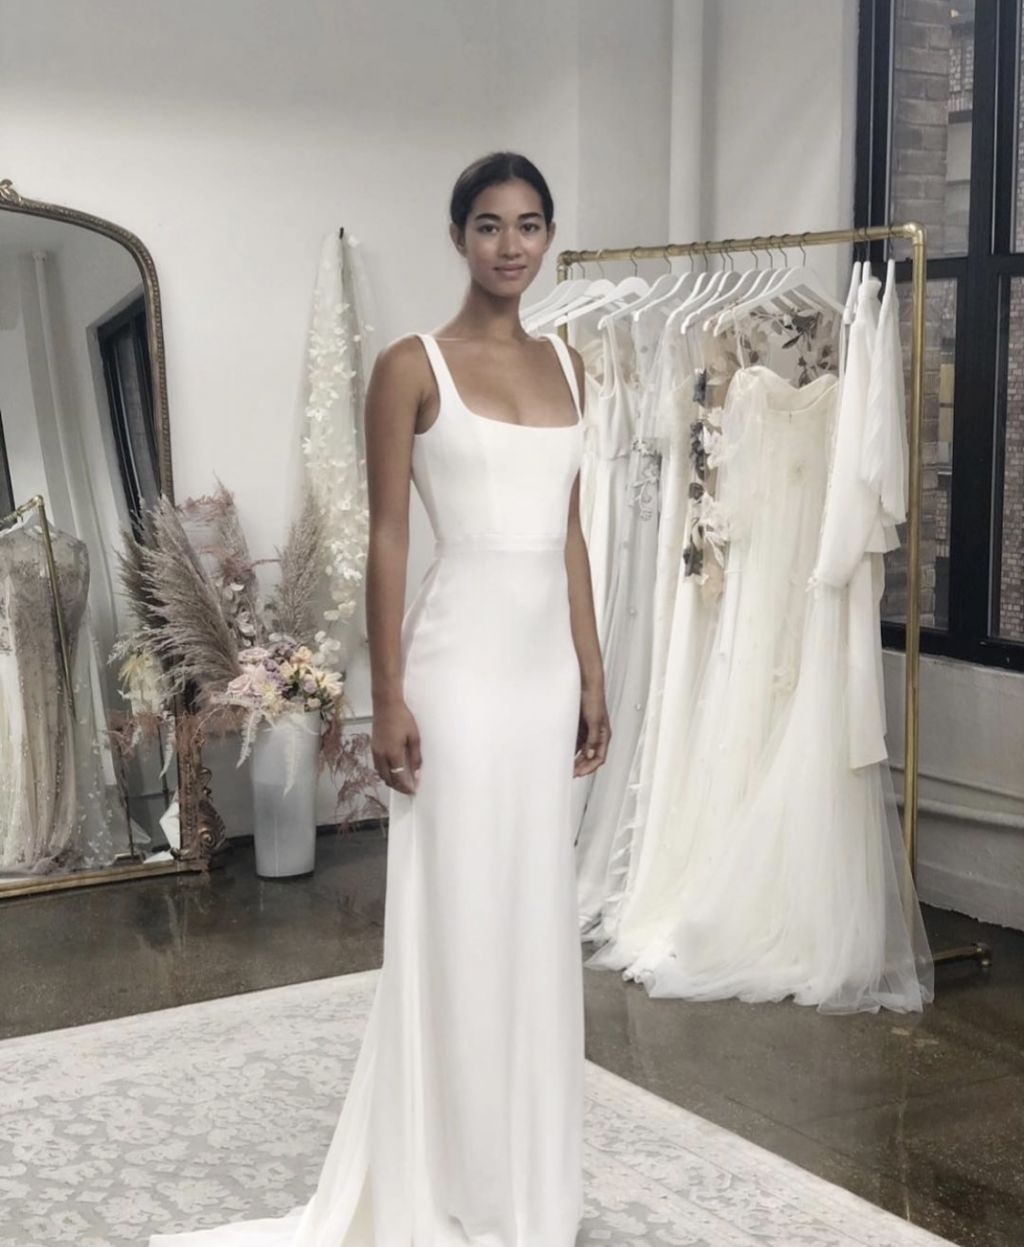 A simple sheath bridal gown with square neckline